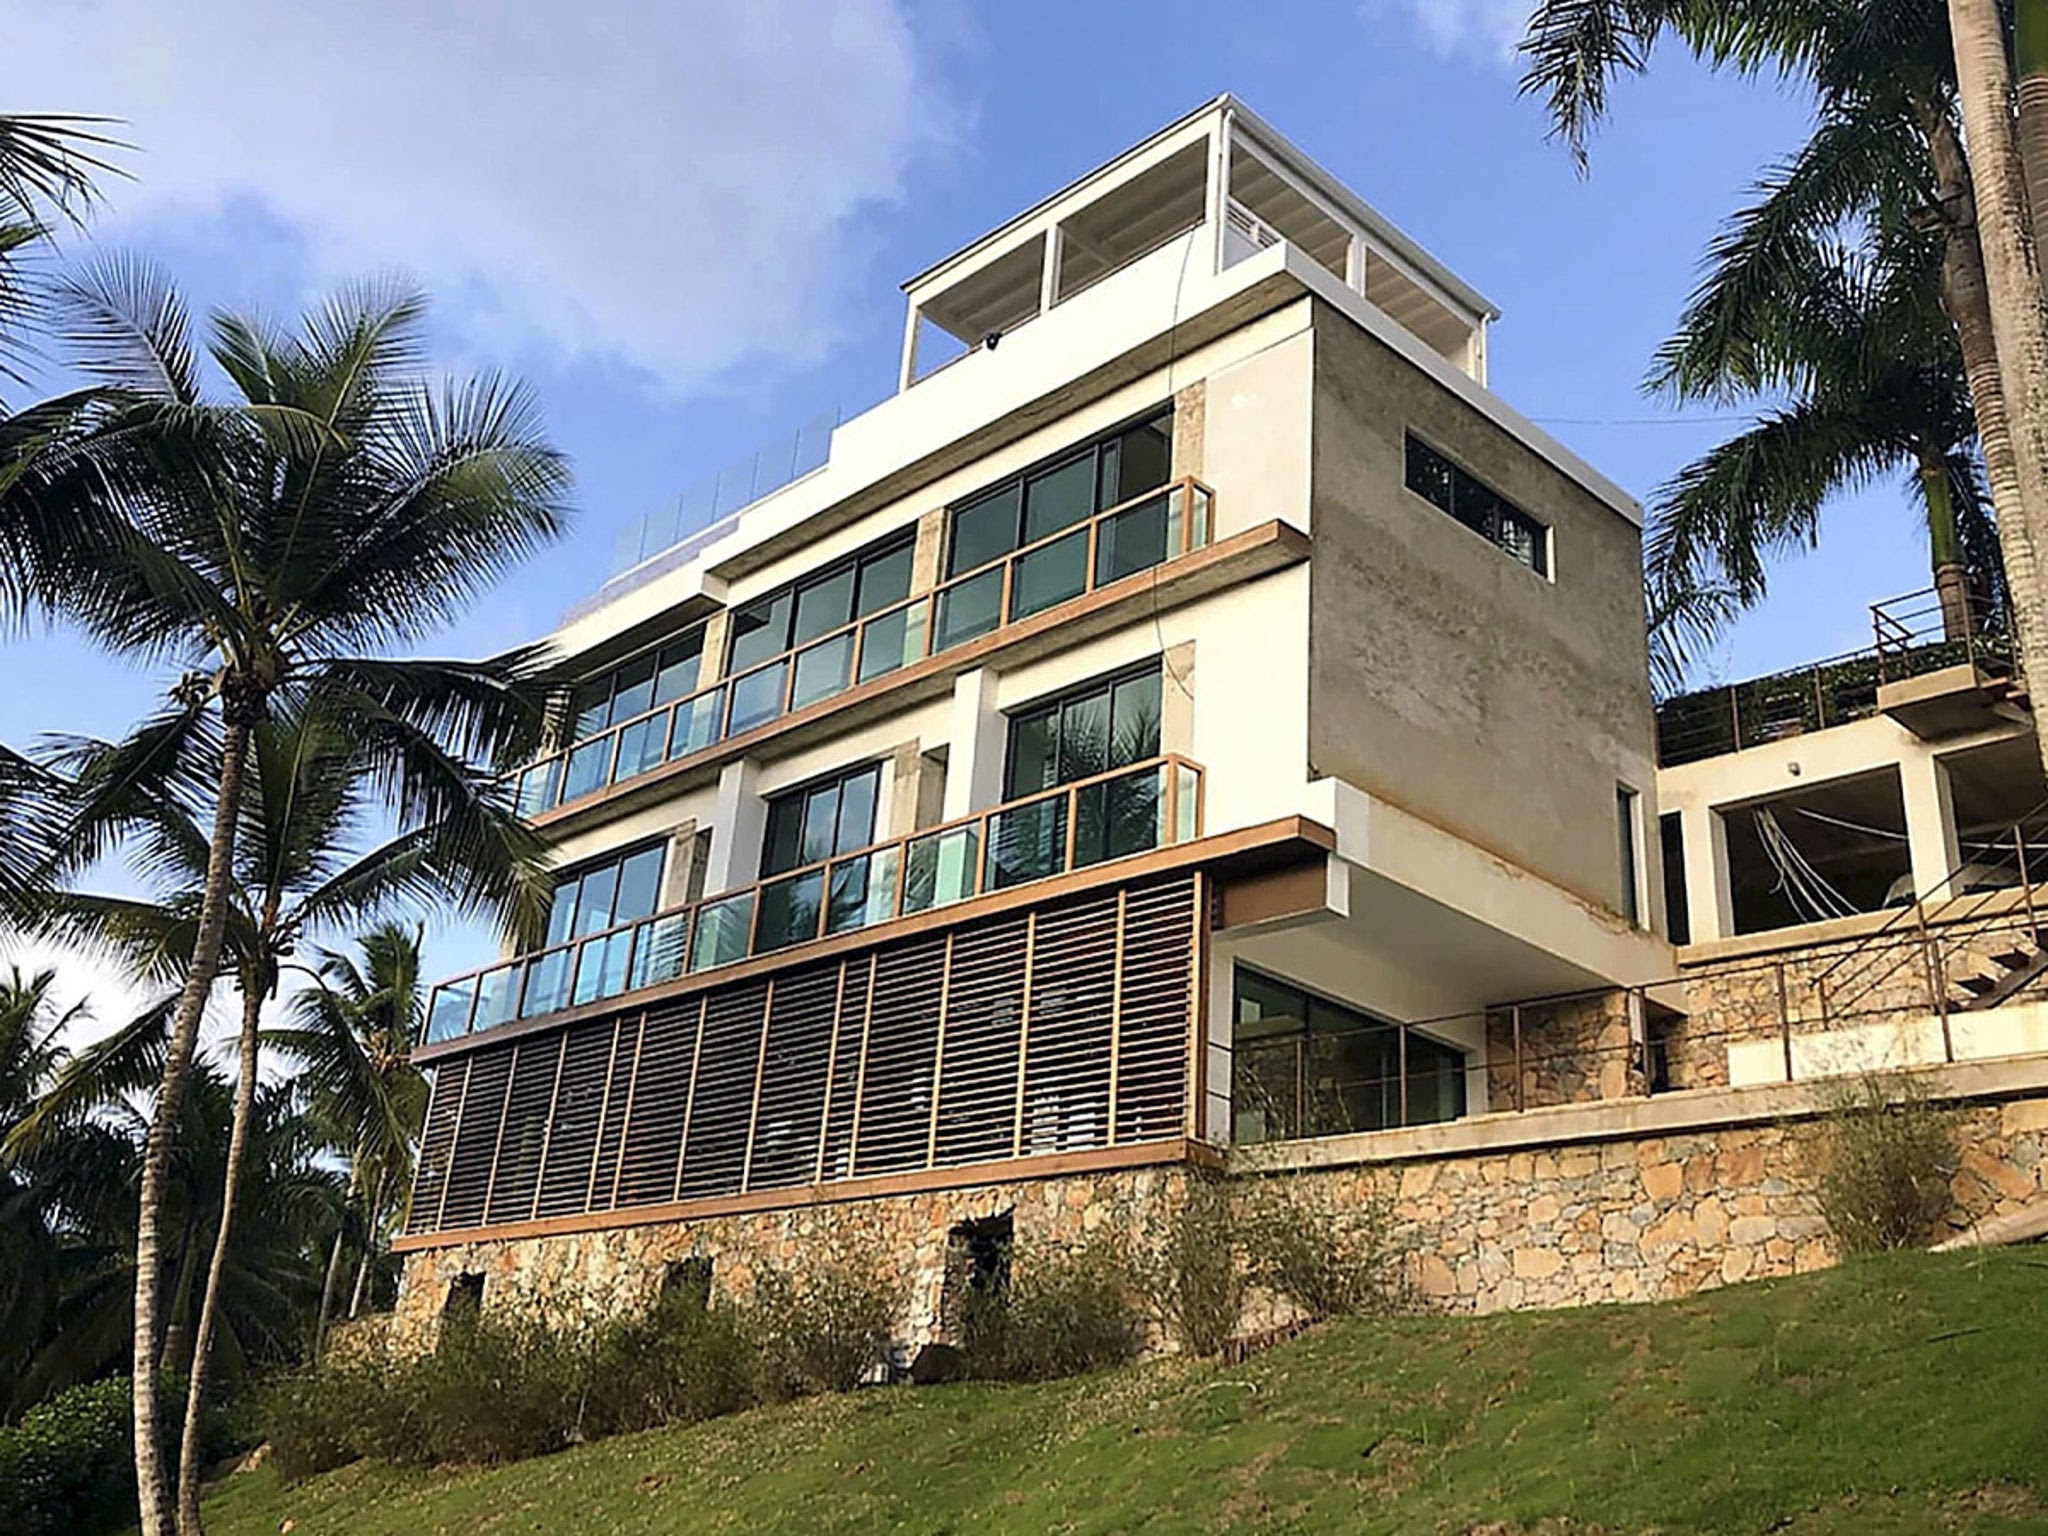 Cardi B's New $1.5 Mil Dominican Republic Home from Offset is Awesome